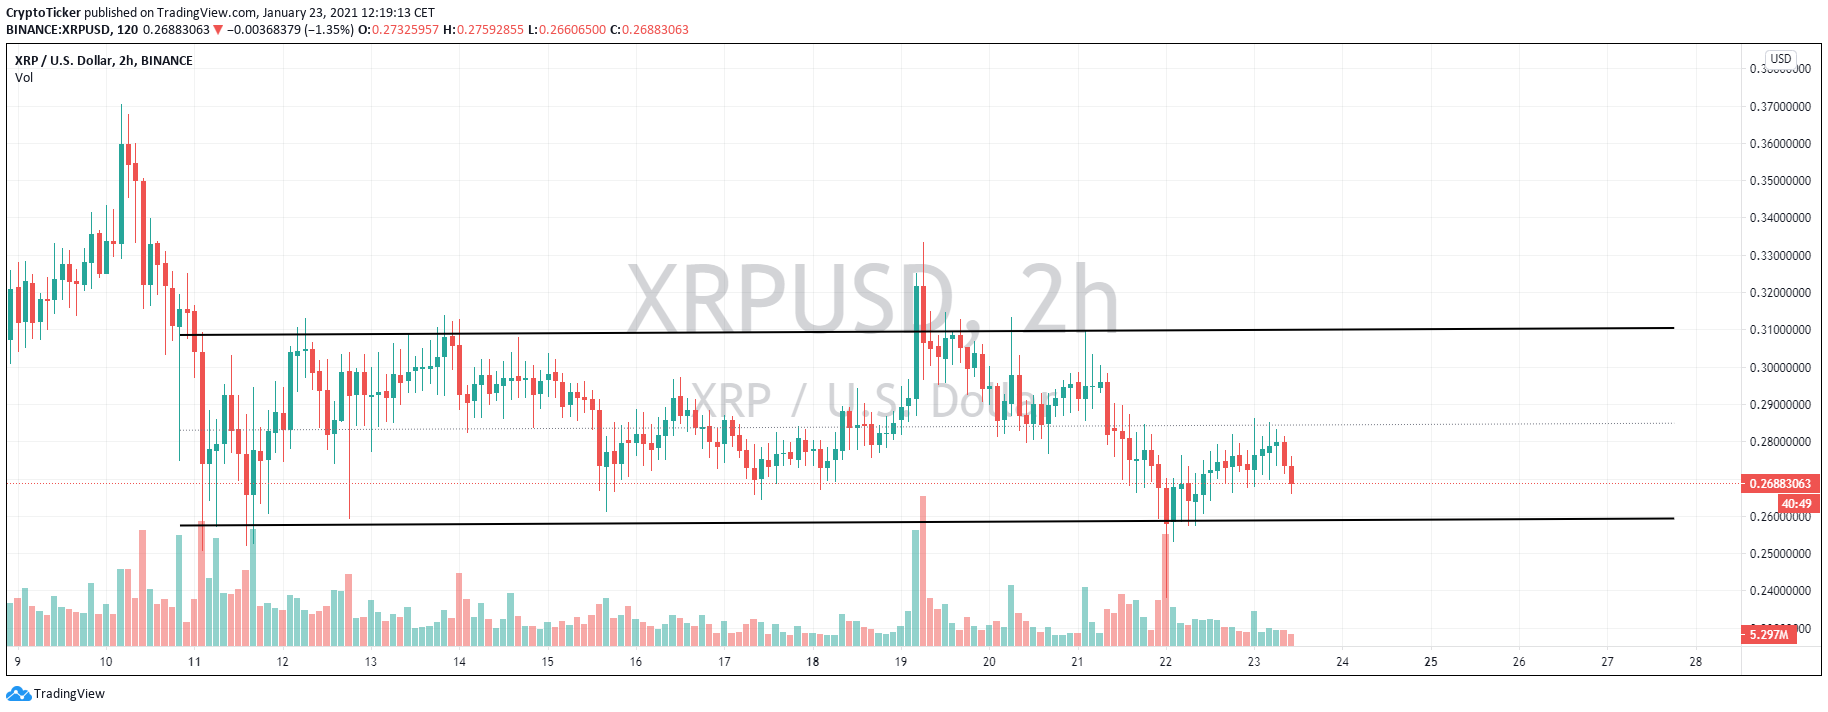 XRP/USD 2-hour chart showing a consolidation in prices